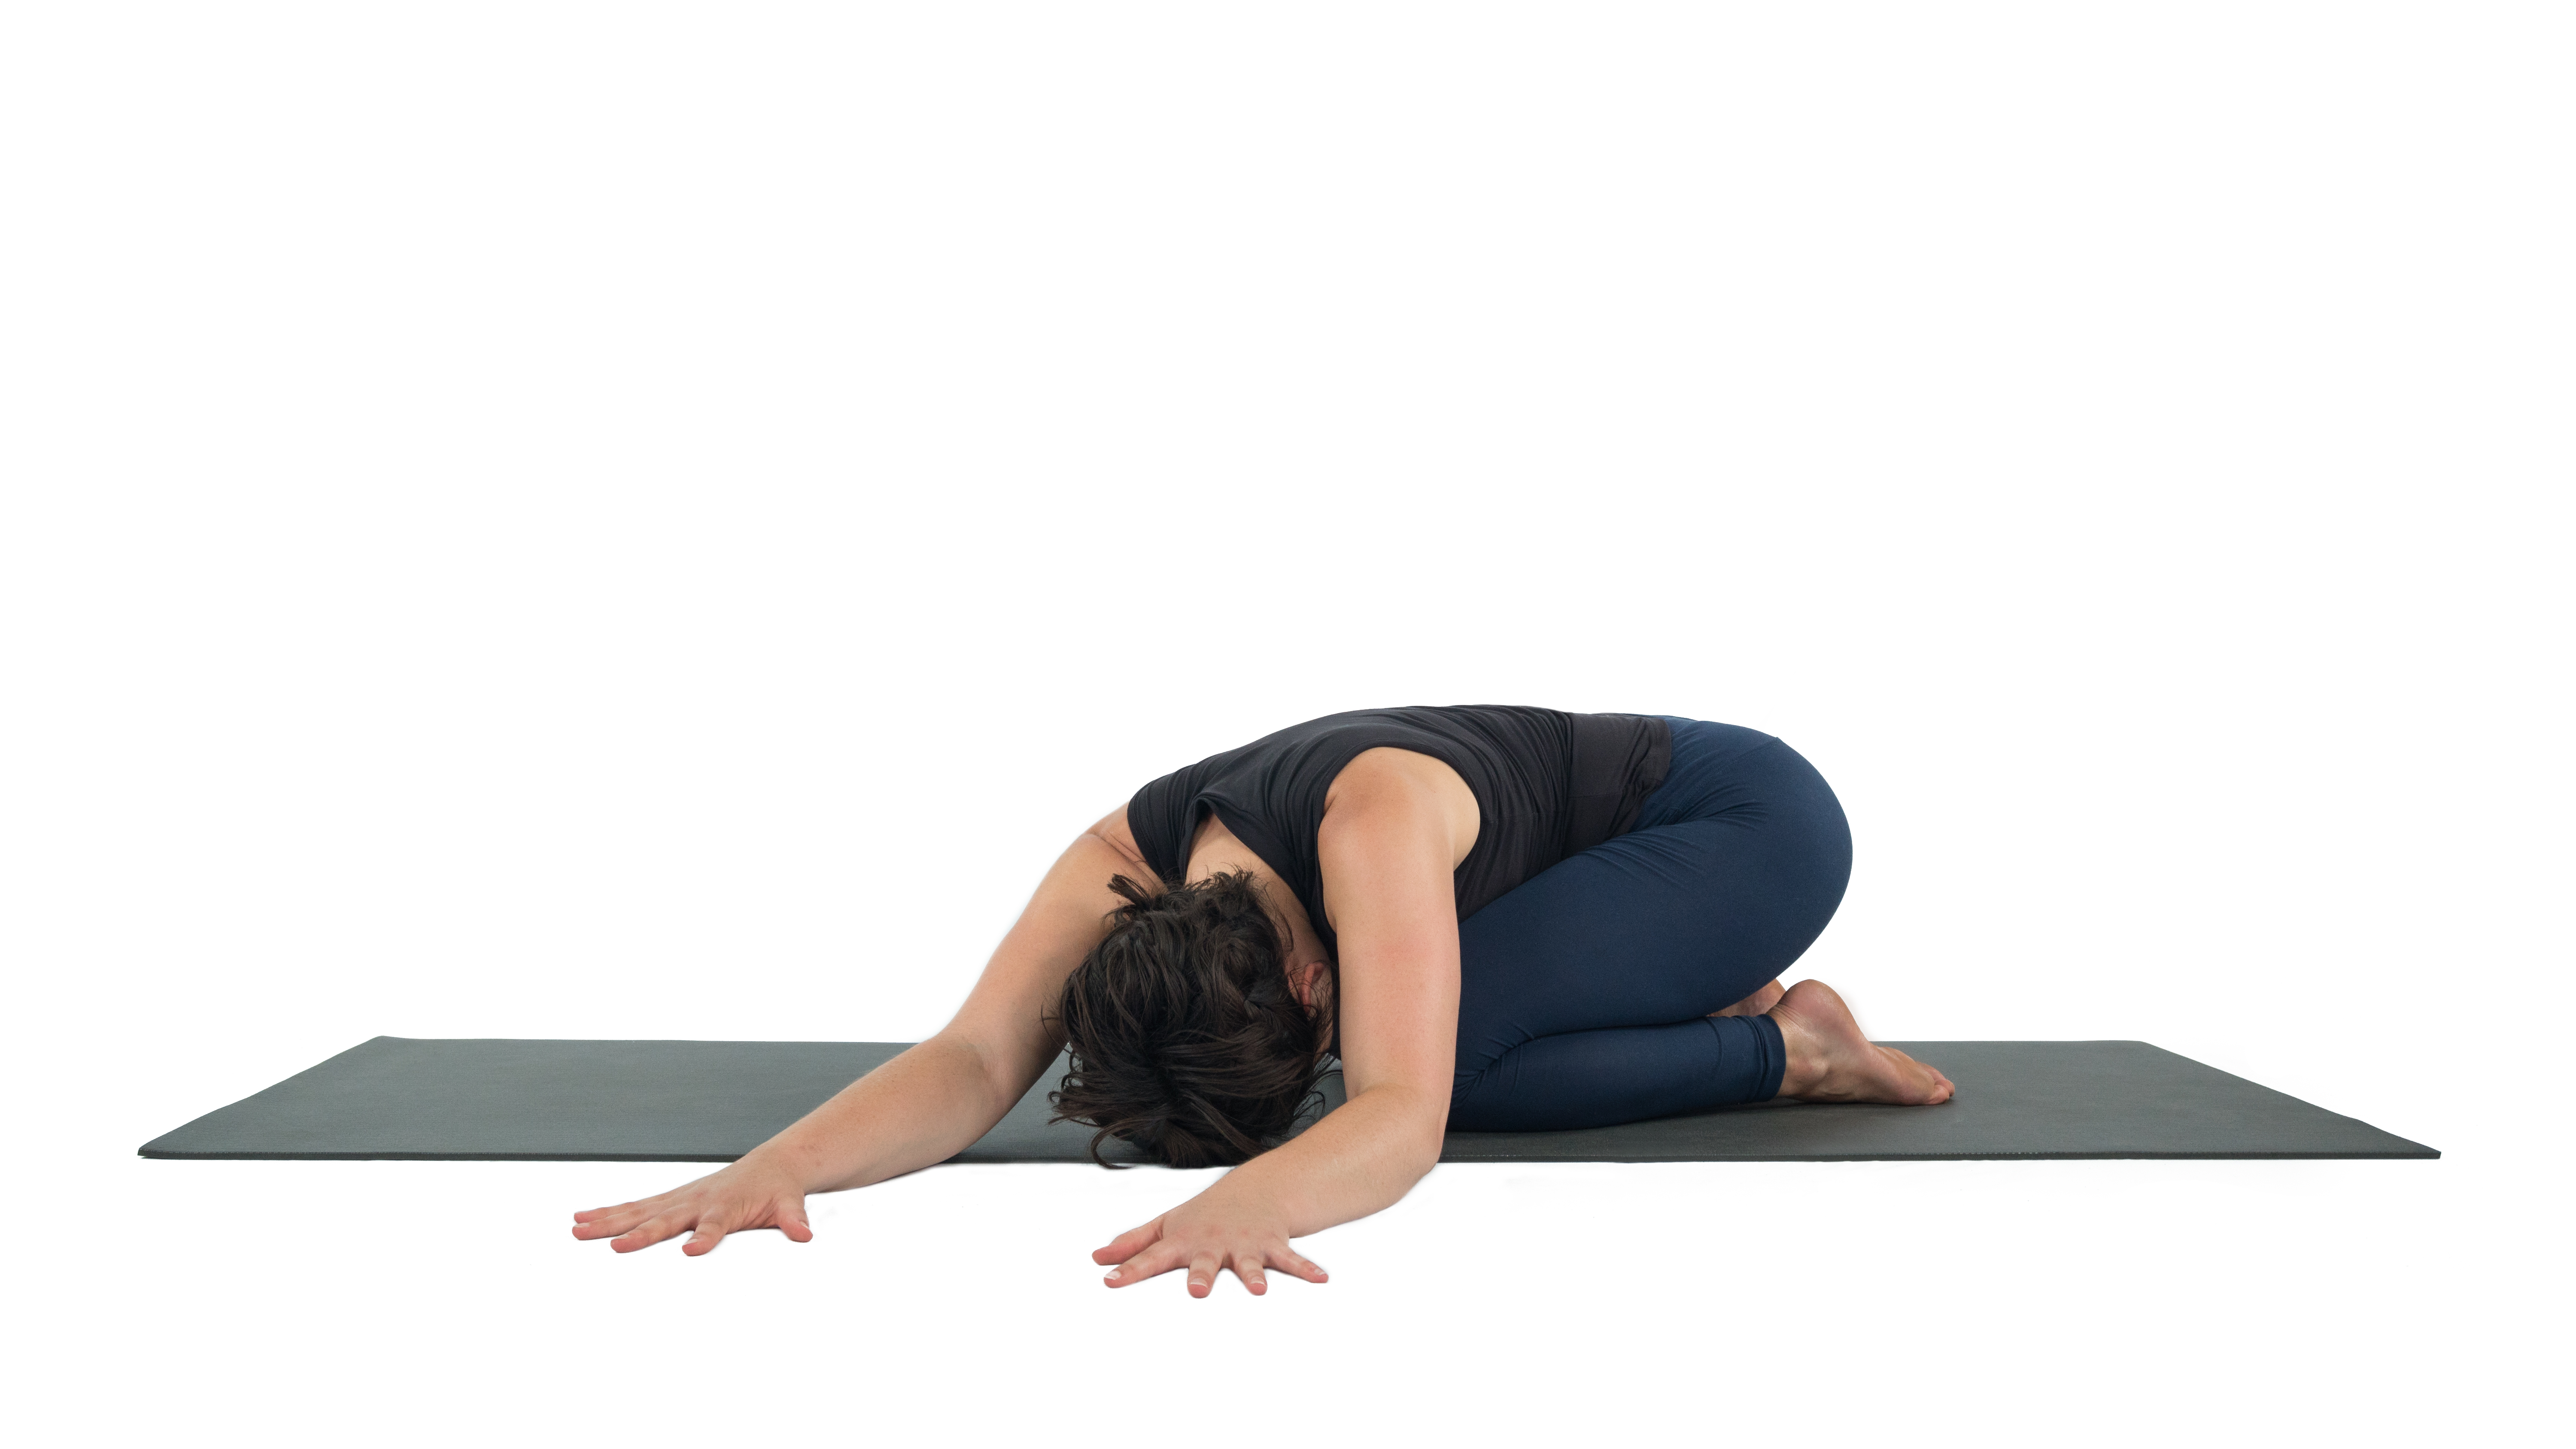 Balasana, Child's Pose, child's pose with side stretch, asana variations, beginner's yoga, child's pose with props